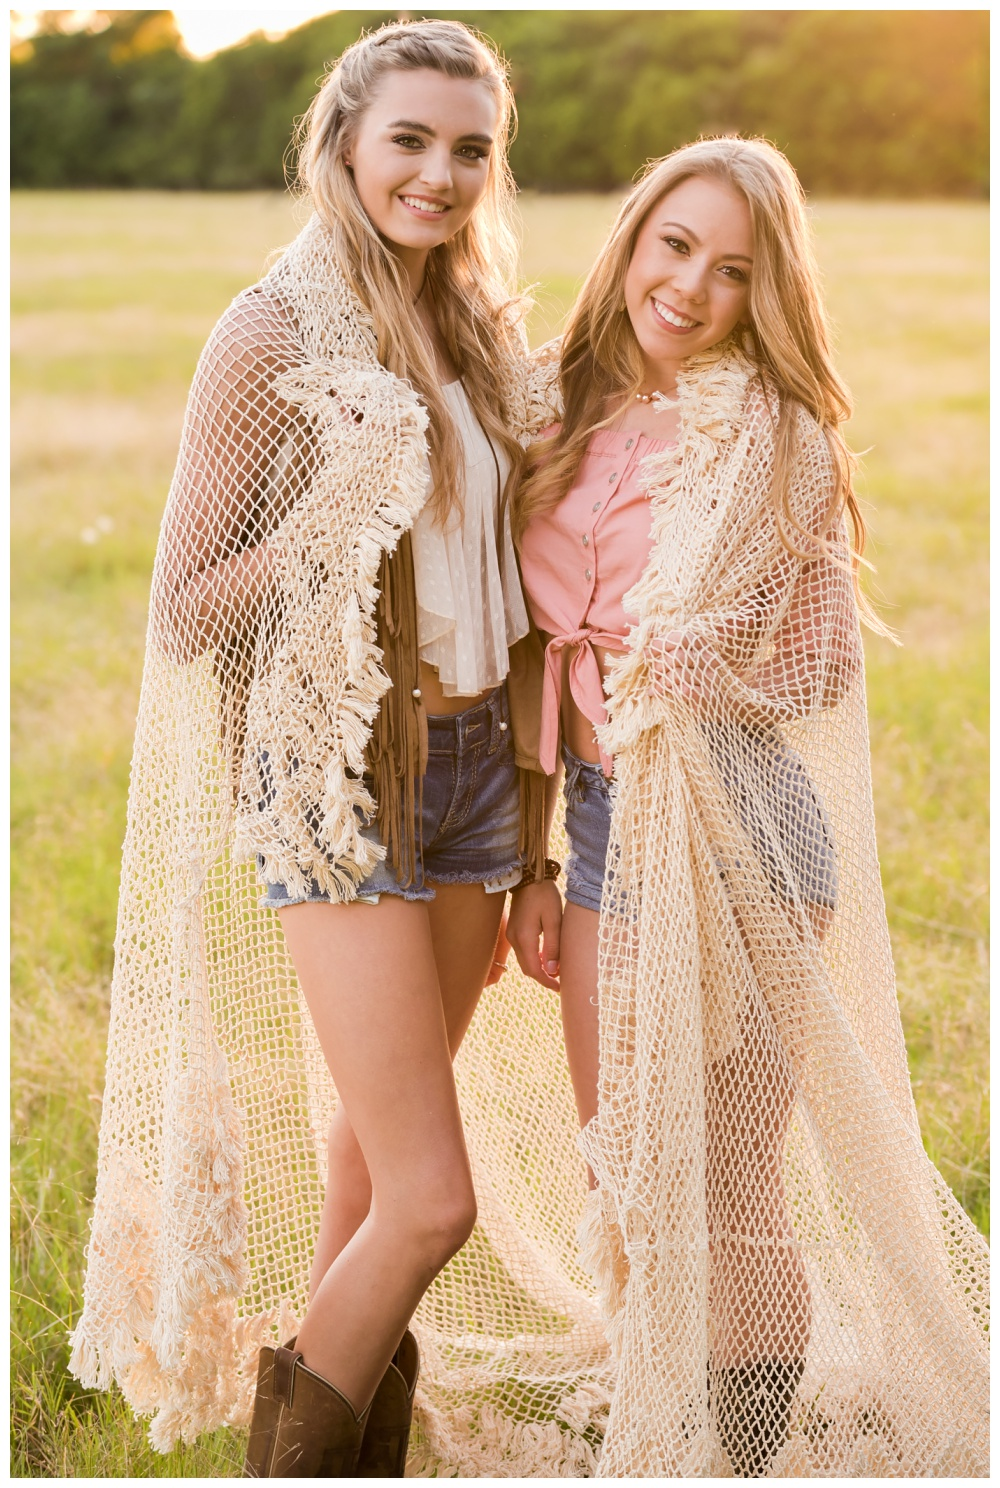 Creations by Jewel_senior girls_bff session.jpg